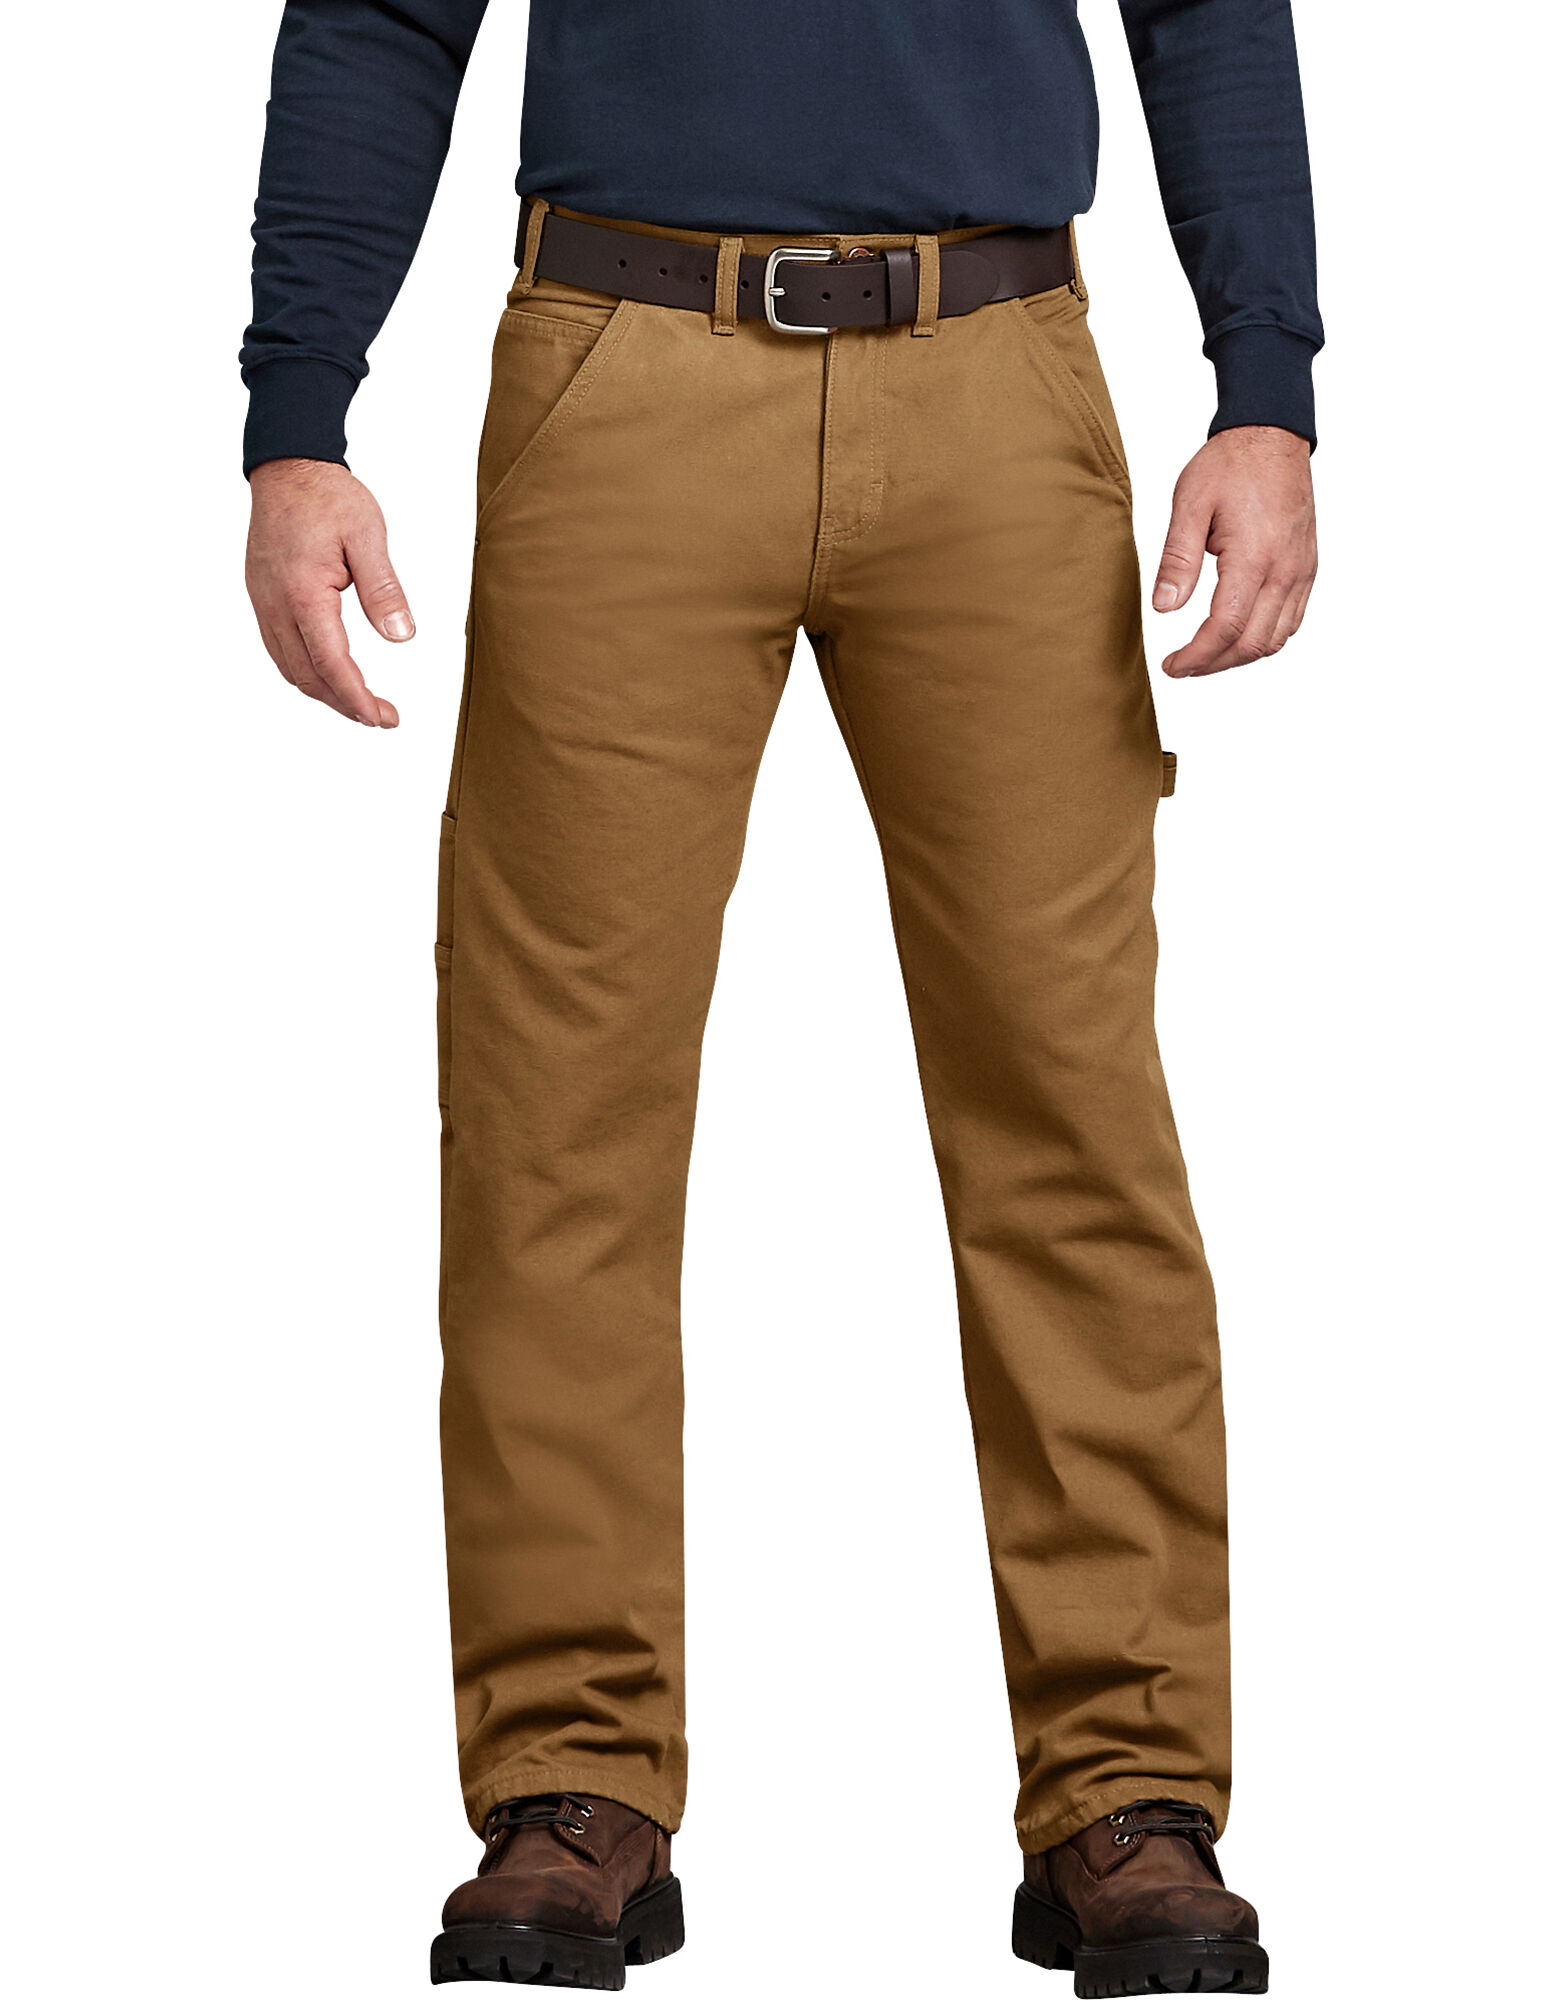 All Sizes NEW TP244-2 Colors Dickie/'s Men/'s Sanded Duck Insulated Pants